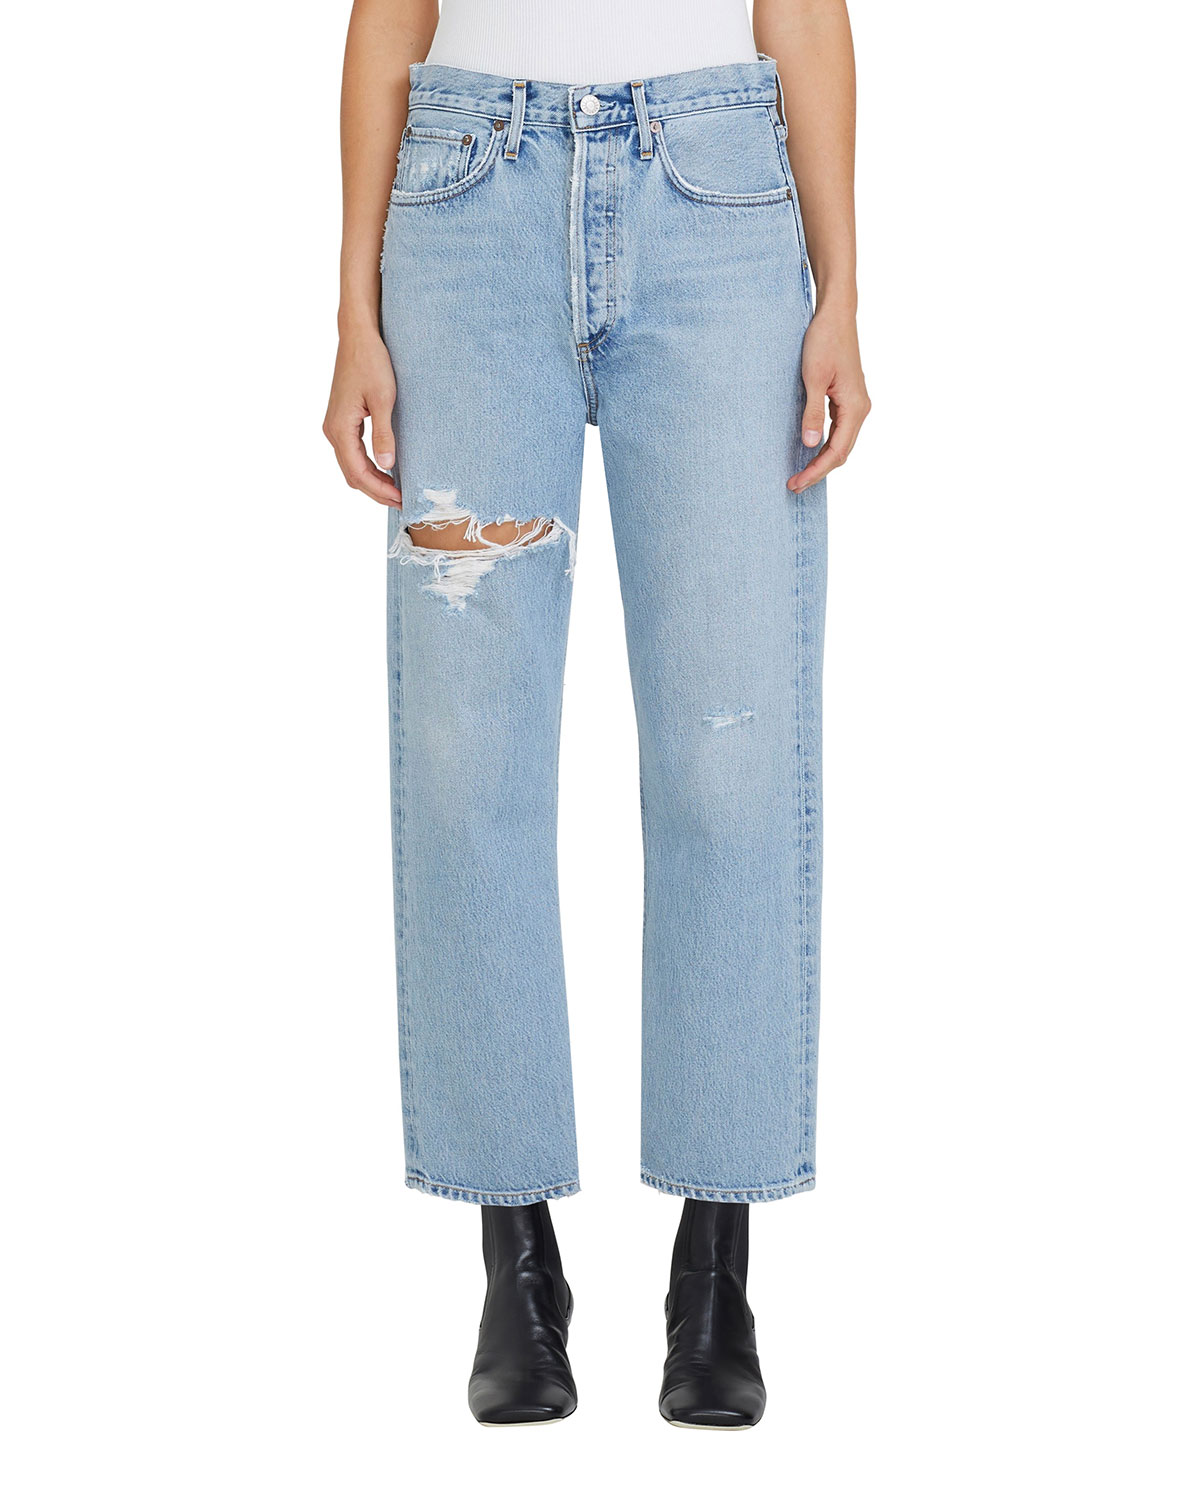 90s Cropped Jeans